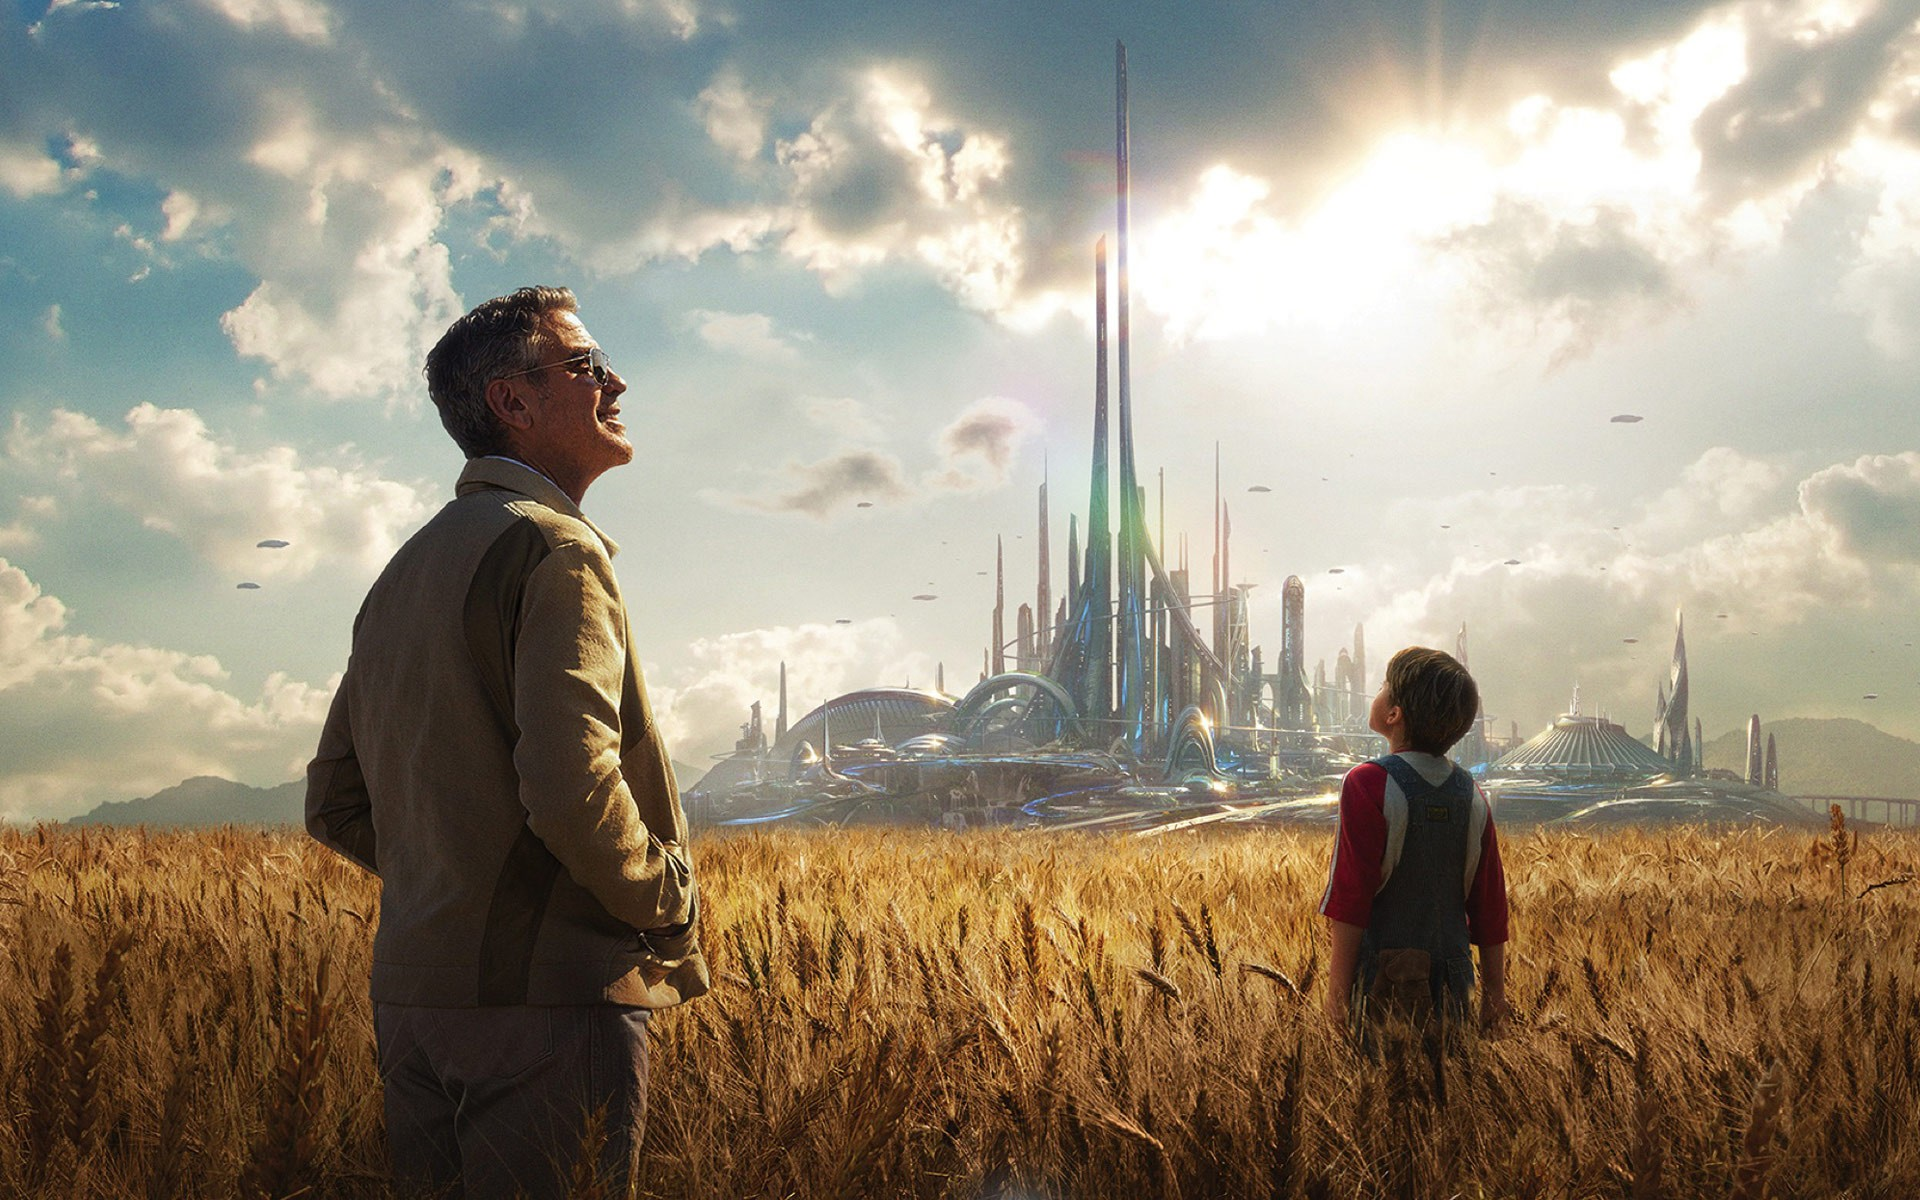 TOMORROWLAND A LA POURSUITE DE DEMAIN - Image 6 du film Disney George Clooney - Go with the Blog